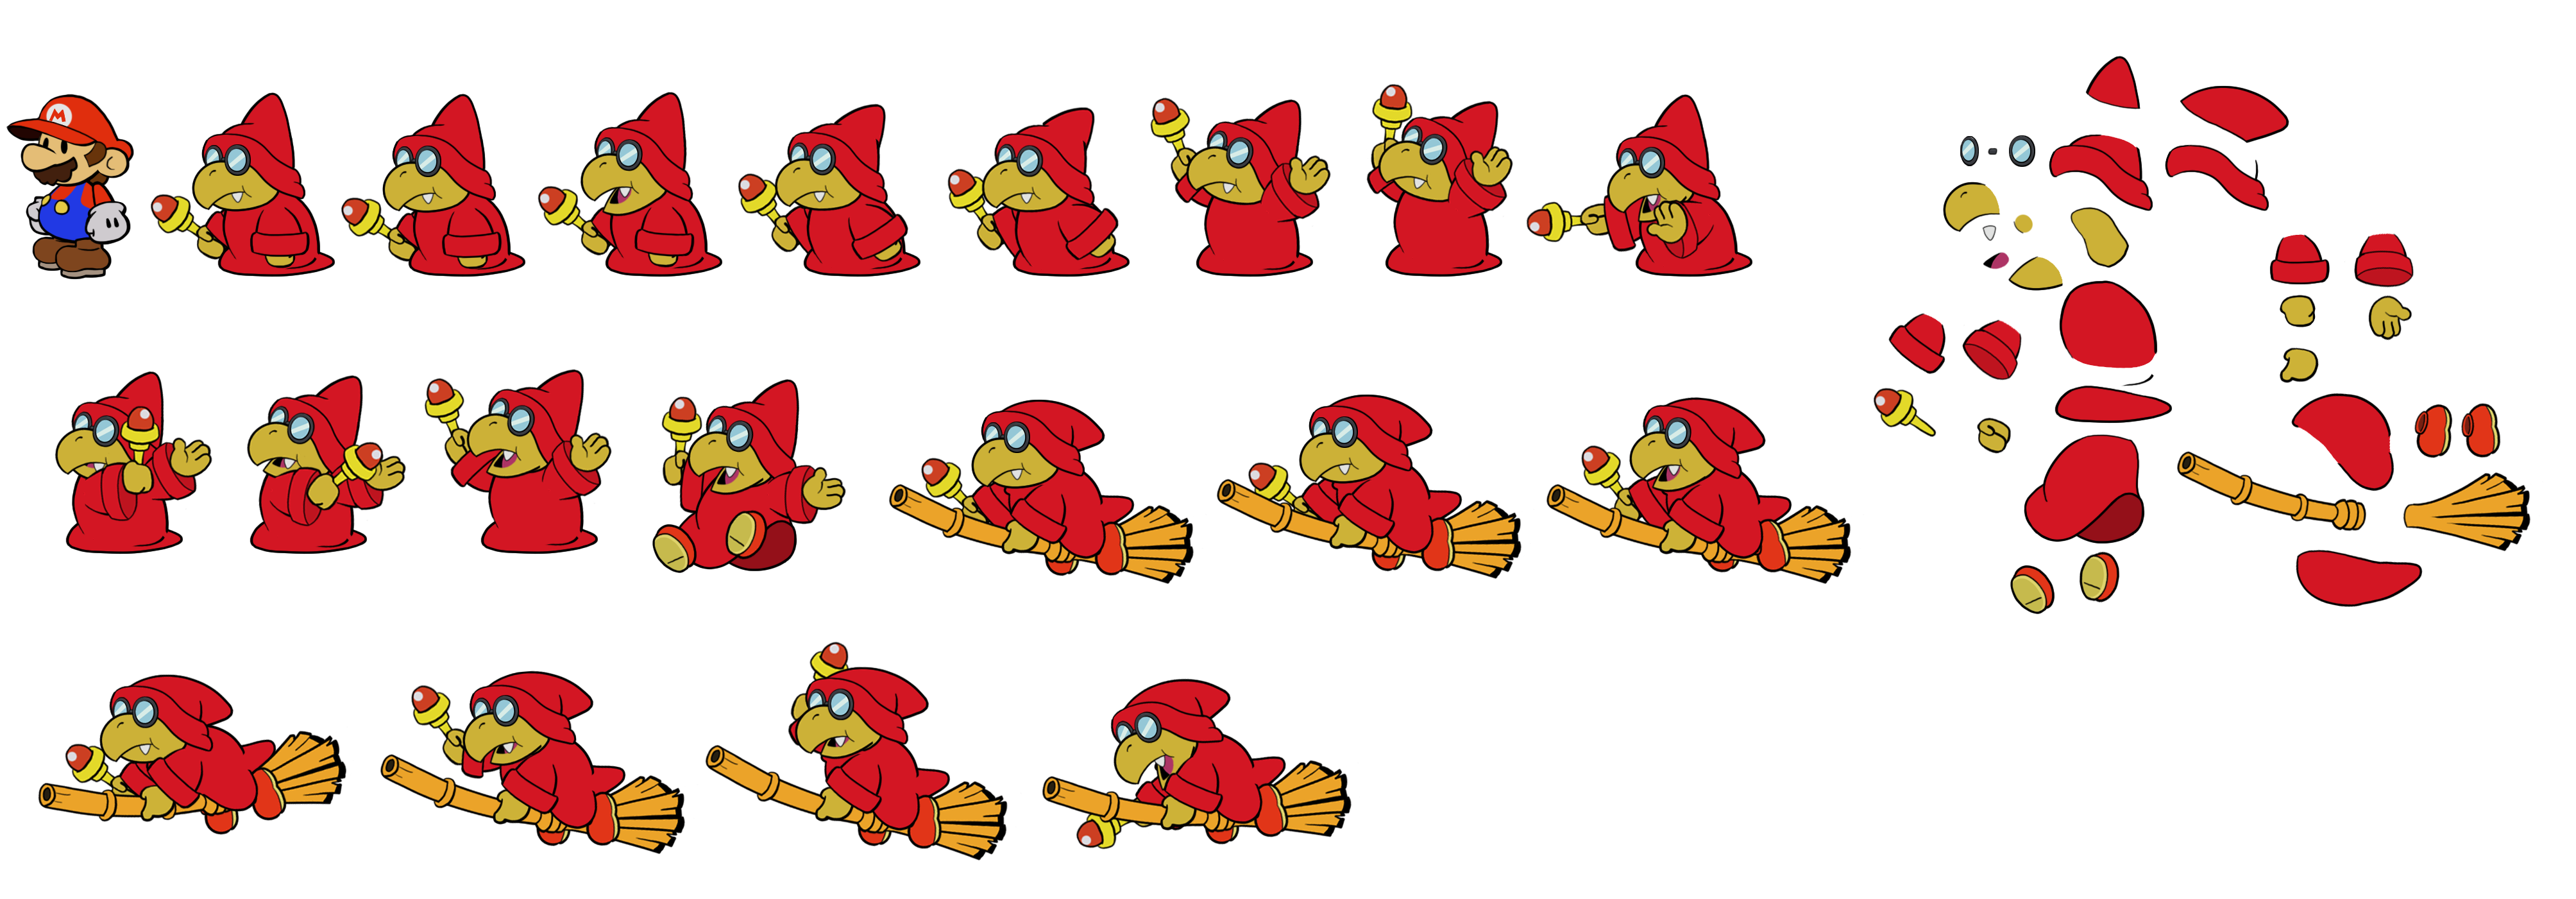 Magikoopa (Red, Paper Mario Style)